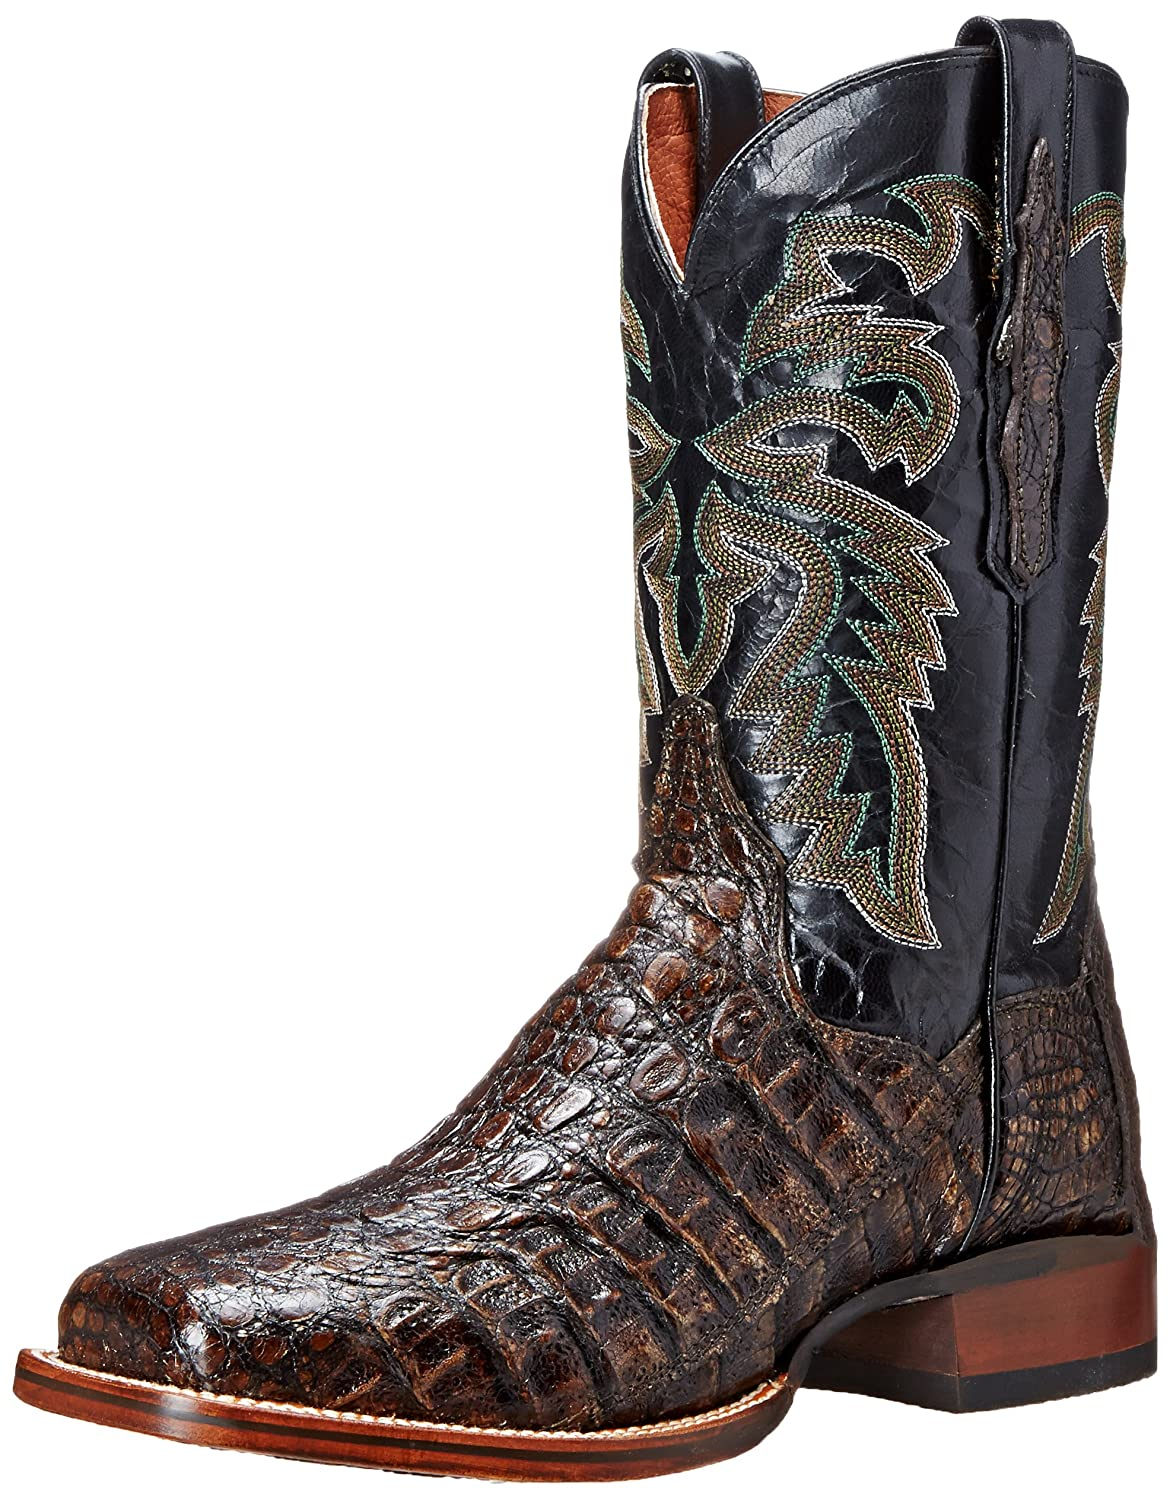 Dan Post Men's Everglades SQ Western Boot B07CT9Q54R 16 B(M) US|Brown